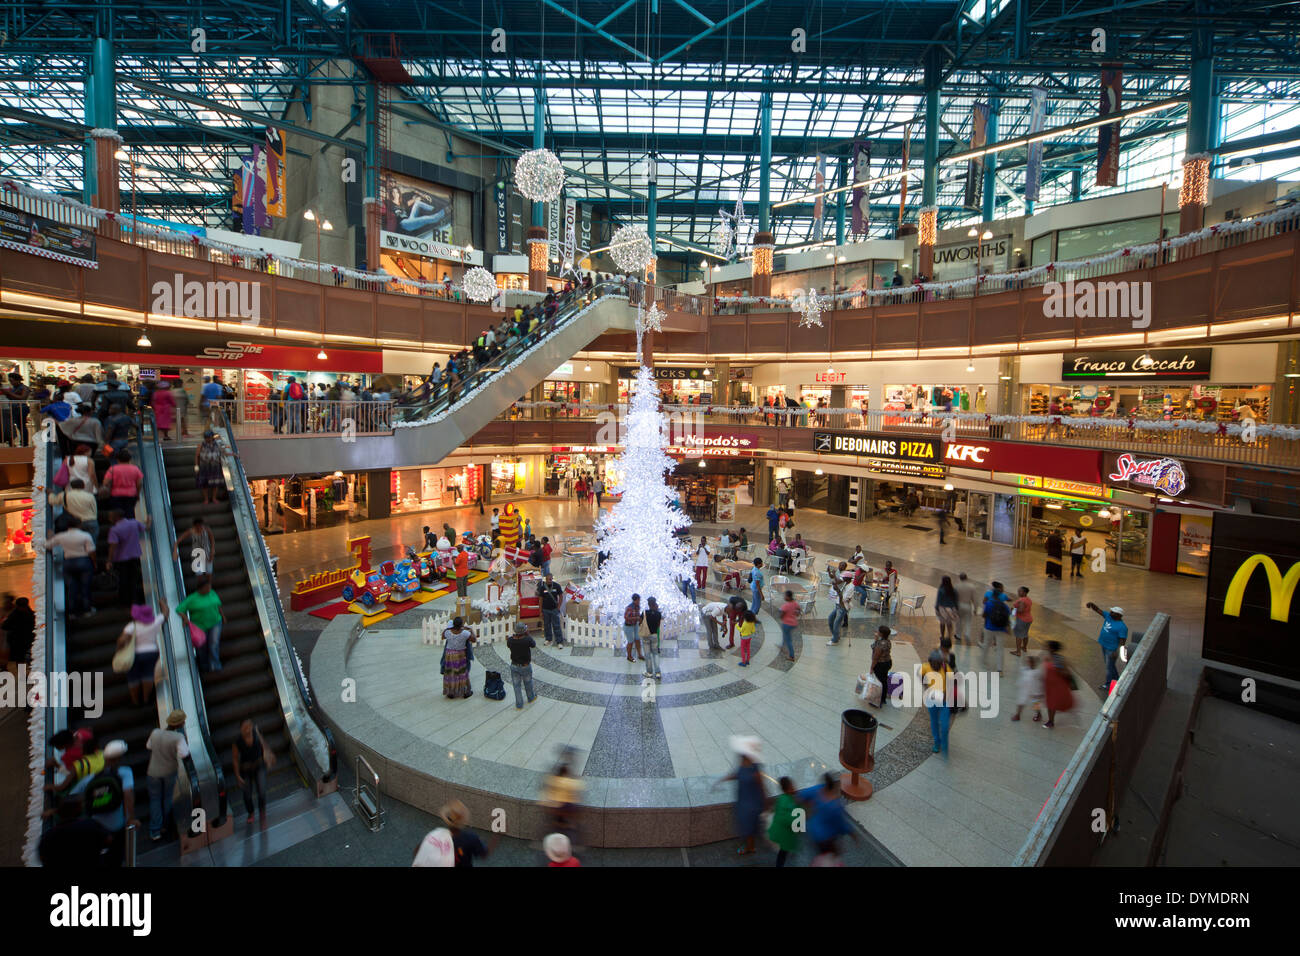 Find the best shopping malls and top shopping centers in Johannesburg. Also find restaurants, clothing stores, country clubs, cafes, bakeries, furniture shops, nightlife and much more! Johannesburg, South Africa. Tel: () WESTGATE Ontdekkers Road Roodepoort Johannesburg, South Africa.